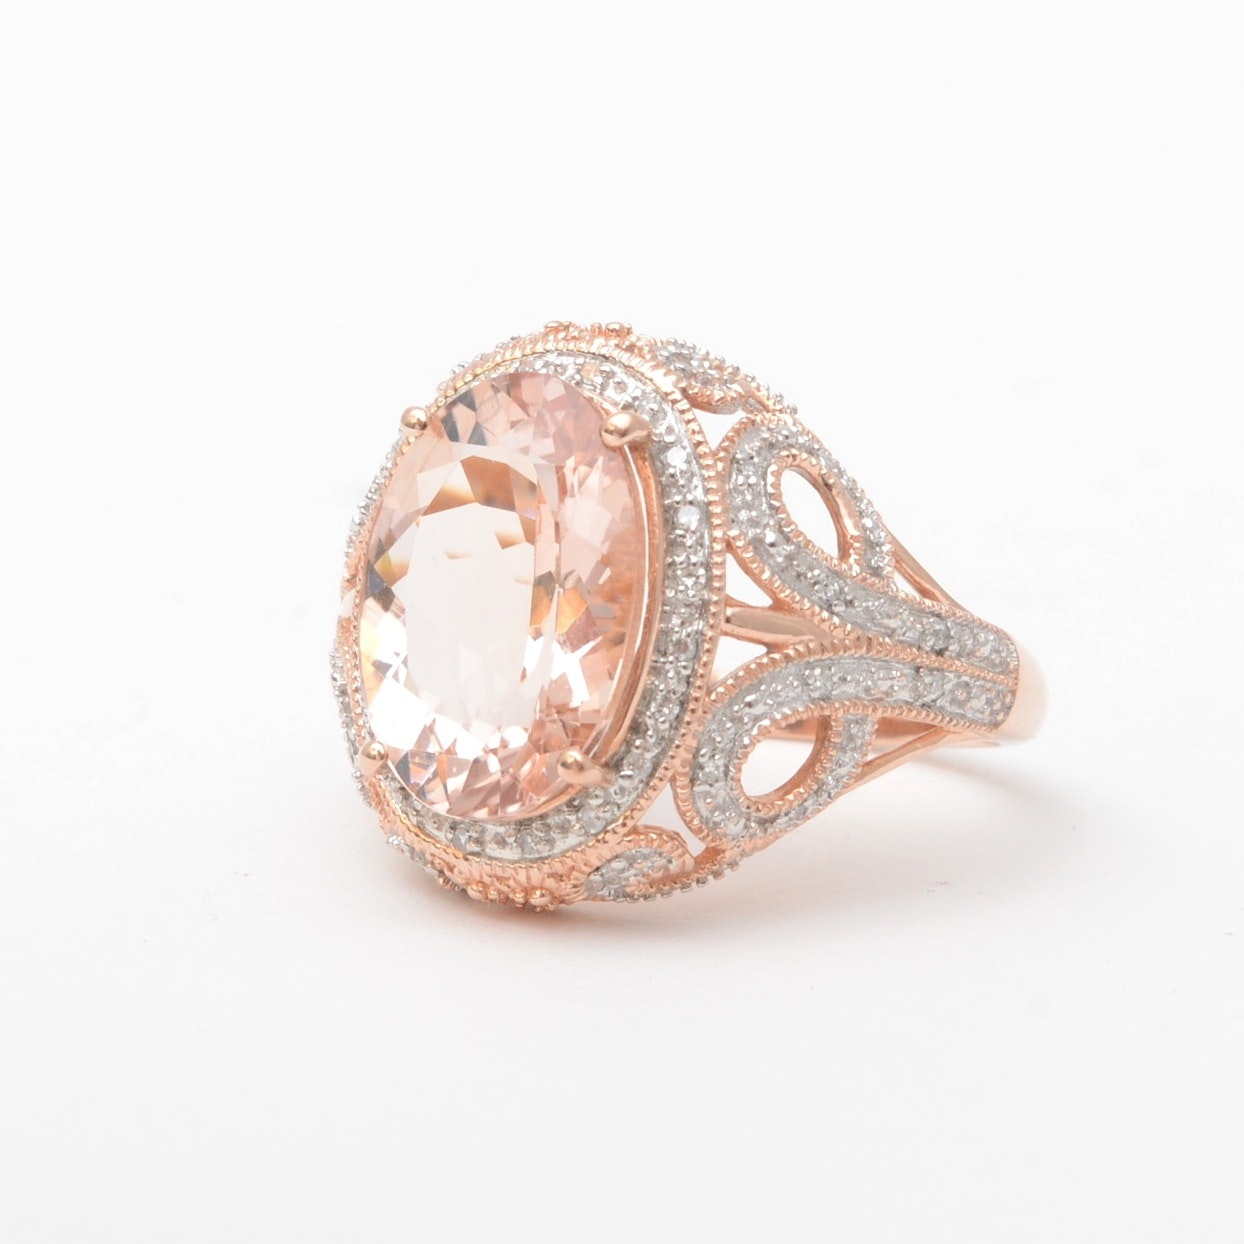 10K Gold and Morganite Ring with Diamonds